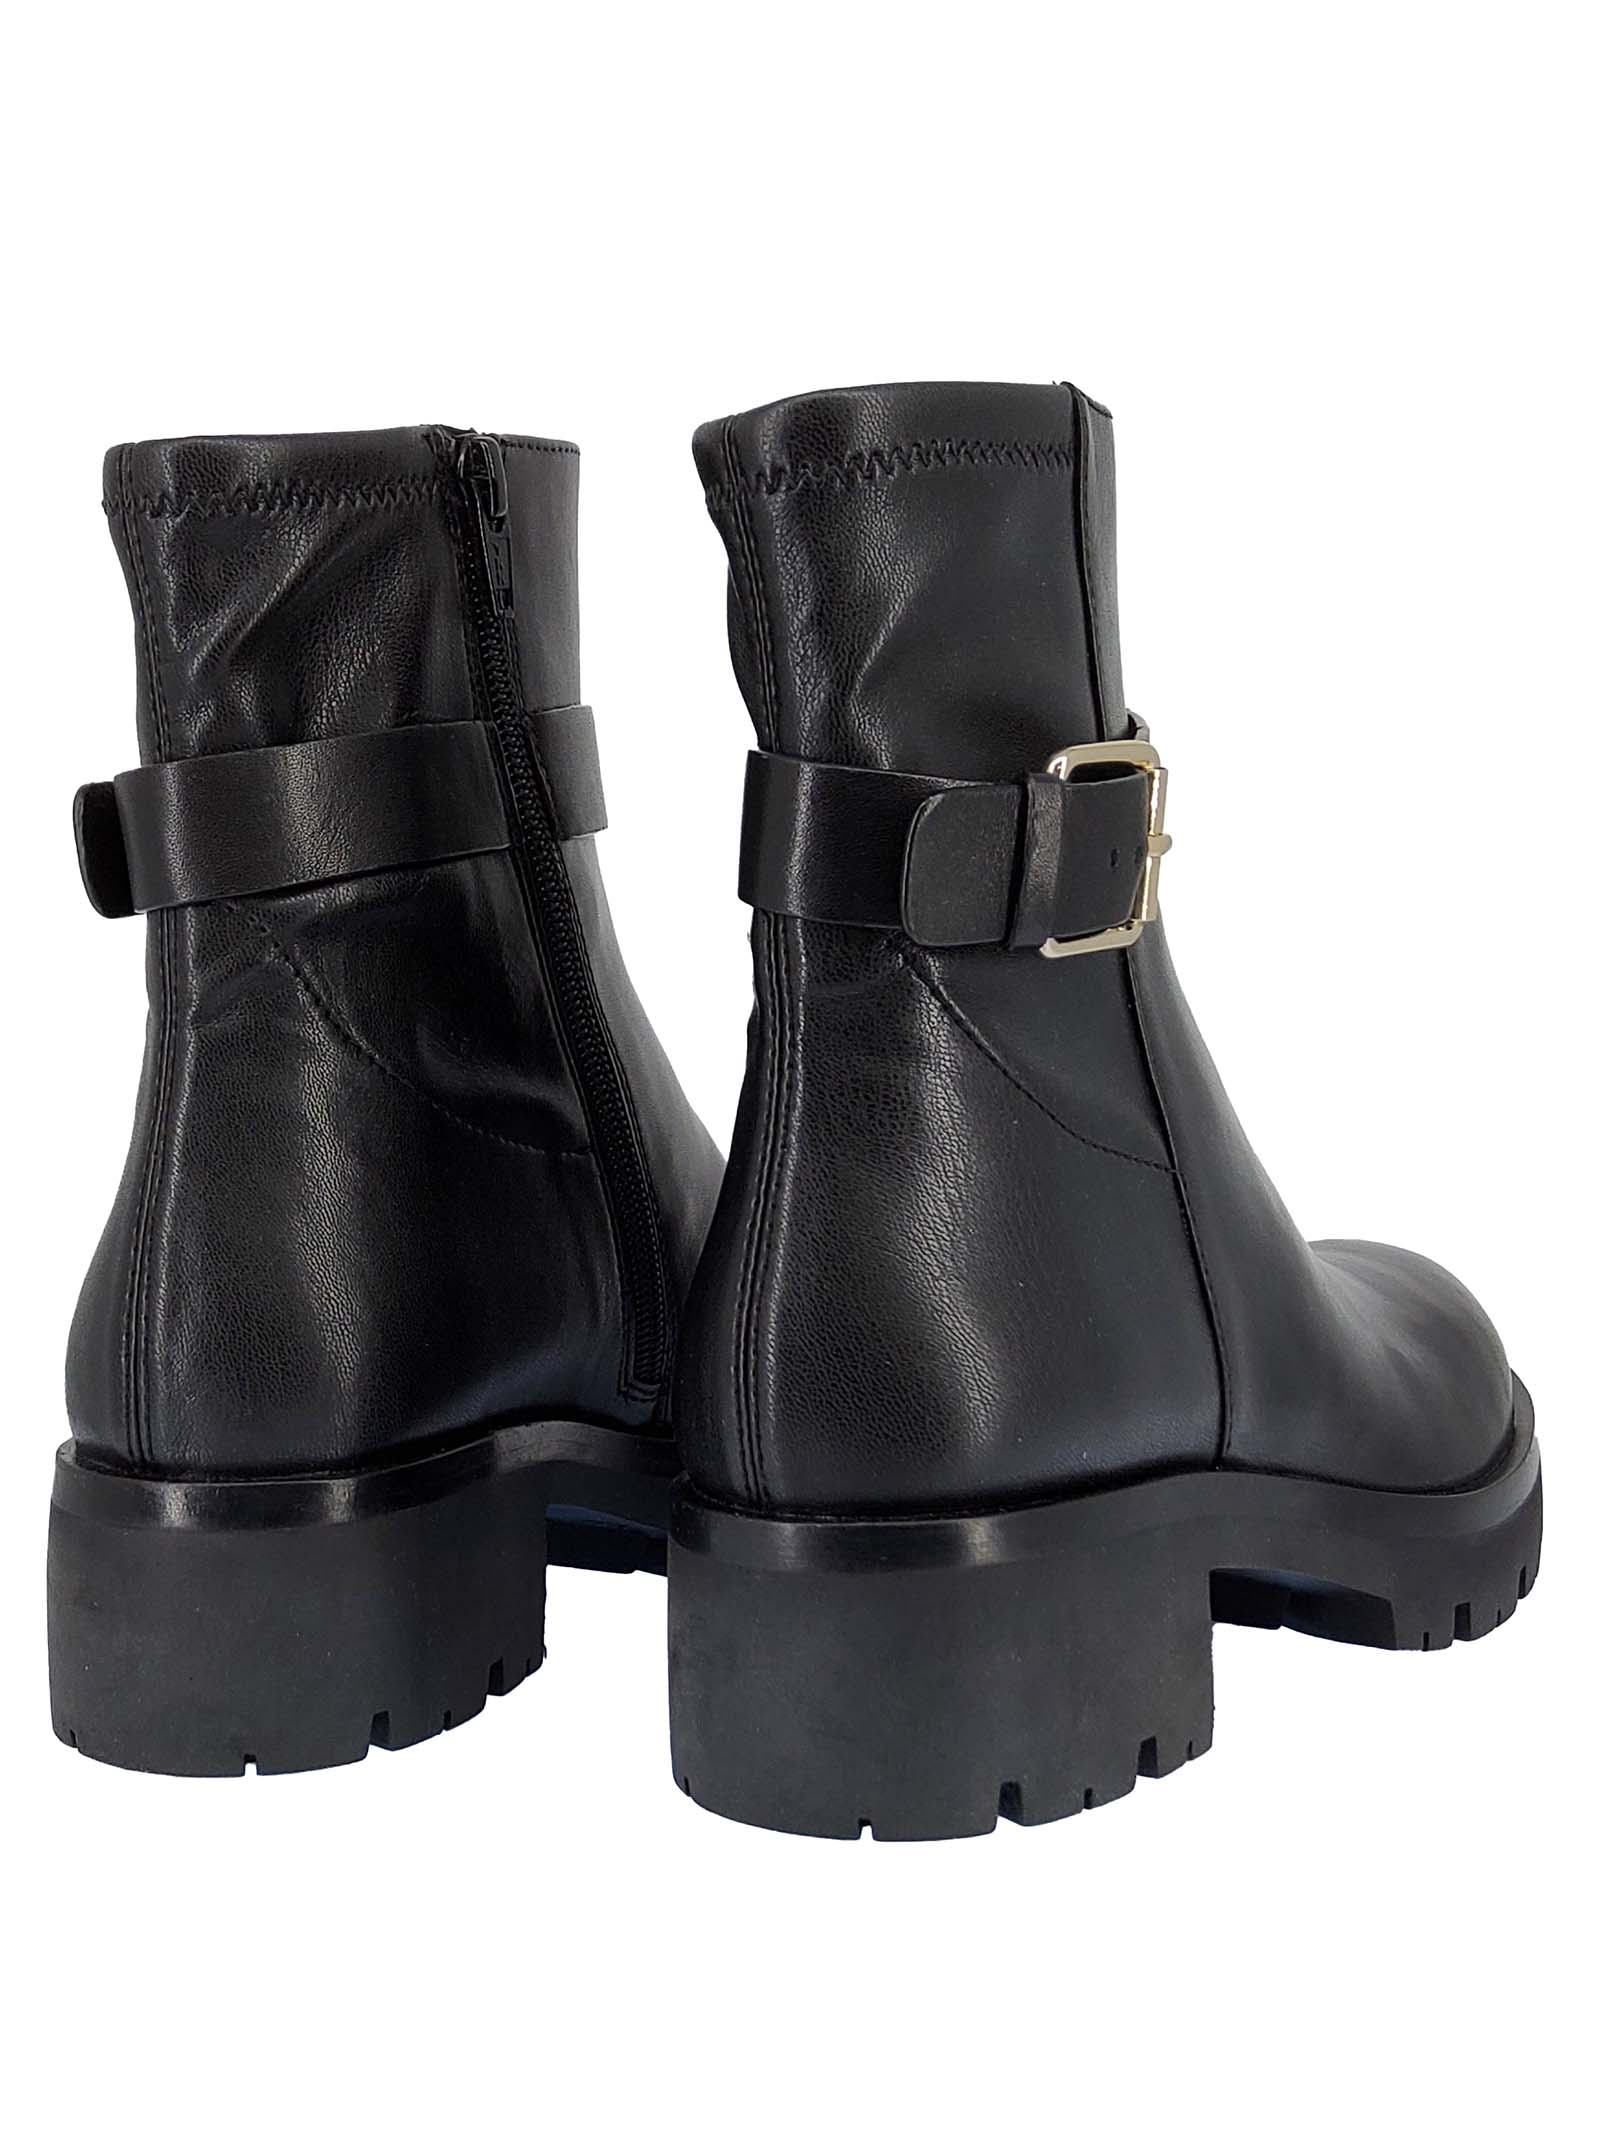 Women's Dory Oxeen Ankle Boots in Black Leather with Buckle and Side Strap and Rubber Sole Tank Bruno Premi | Ankle Boots | BC0507X001